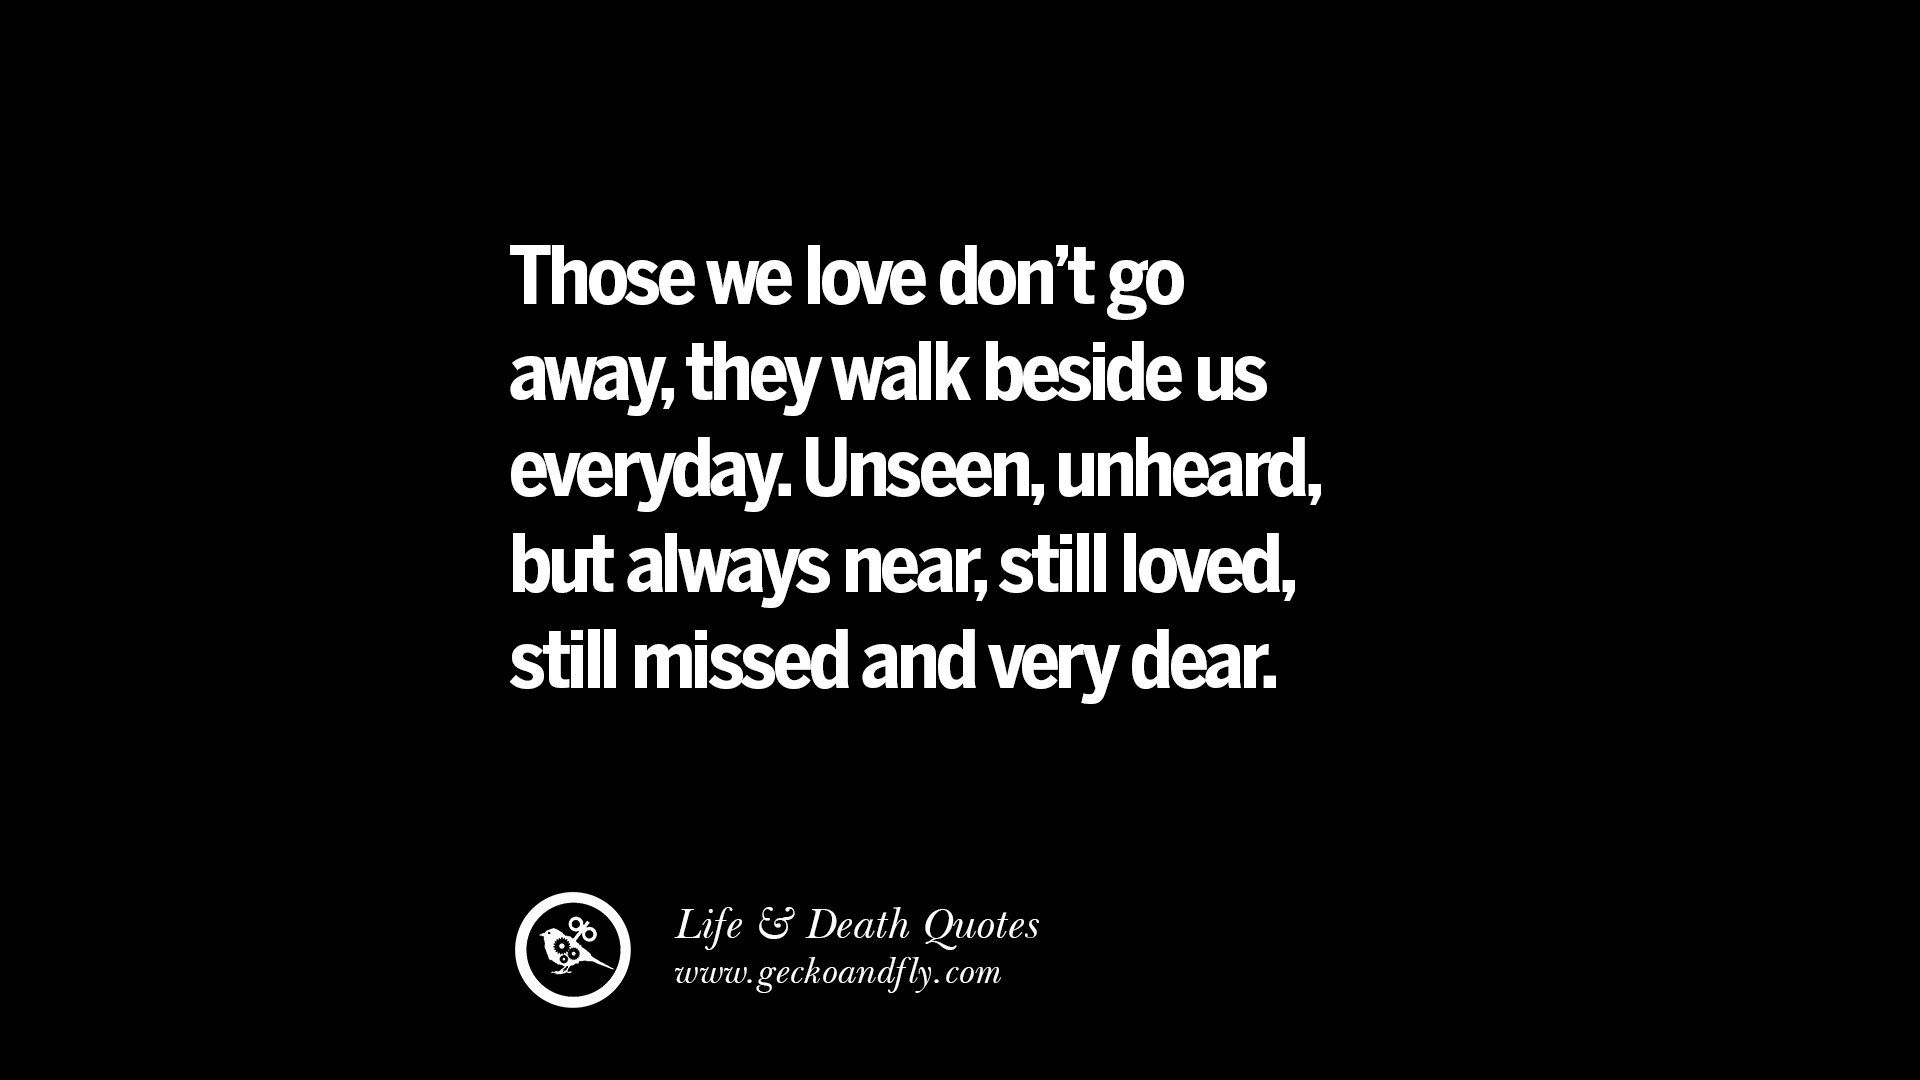 Those we love don t go away they walk beside us everyday Unseen unheard but always near still loved still missed and very dear